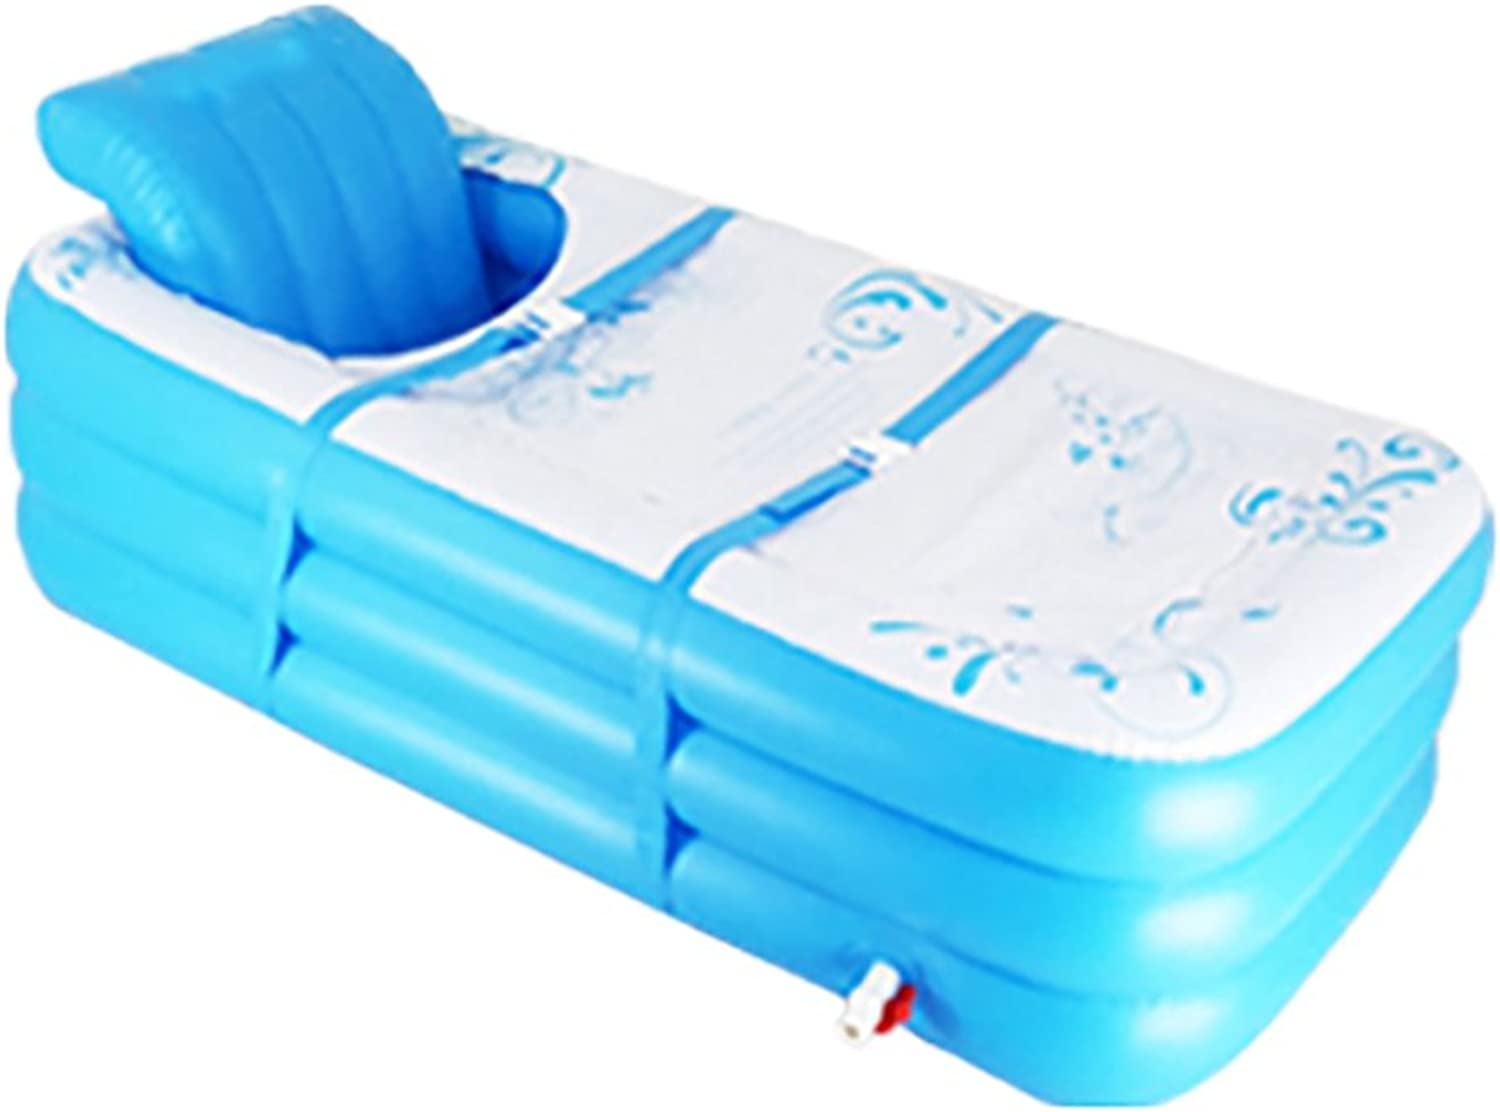 ZELIAN-Aerated Bathtub Adult Electric Pump Inflatable Bathtub New Thicken Baby Pool Portable Folding Extended Bath Plastic bluee (Size   130cm)